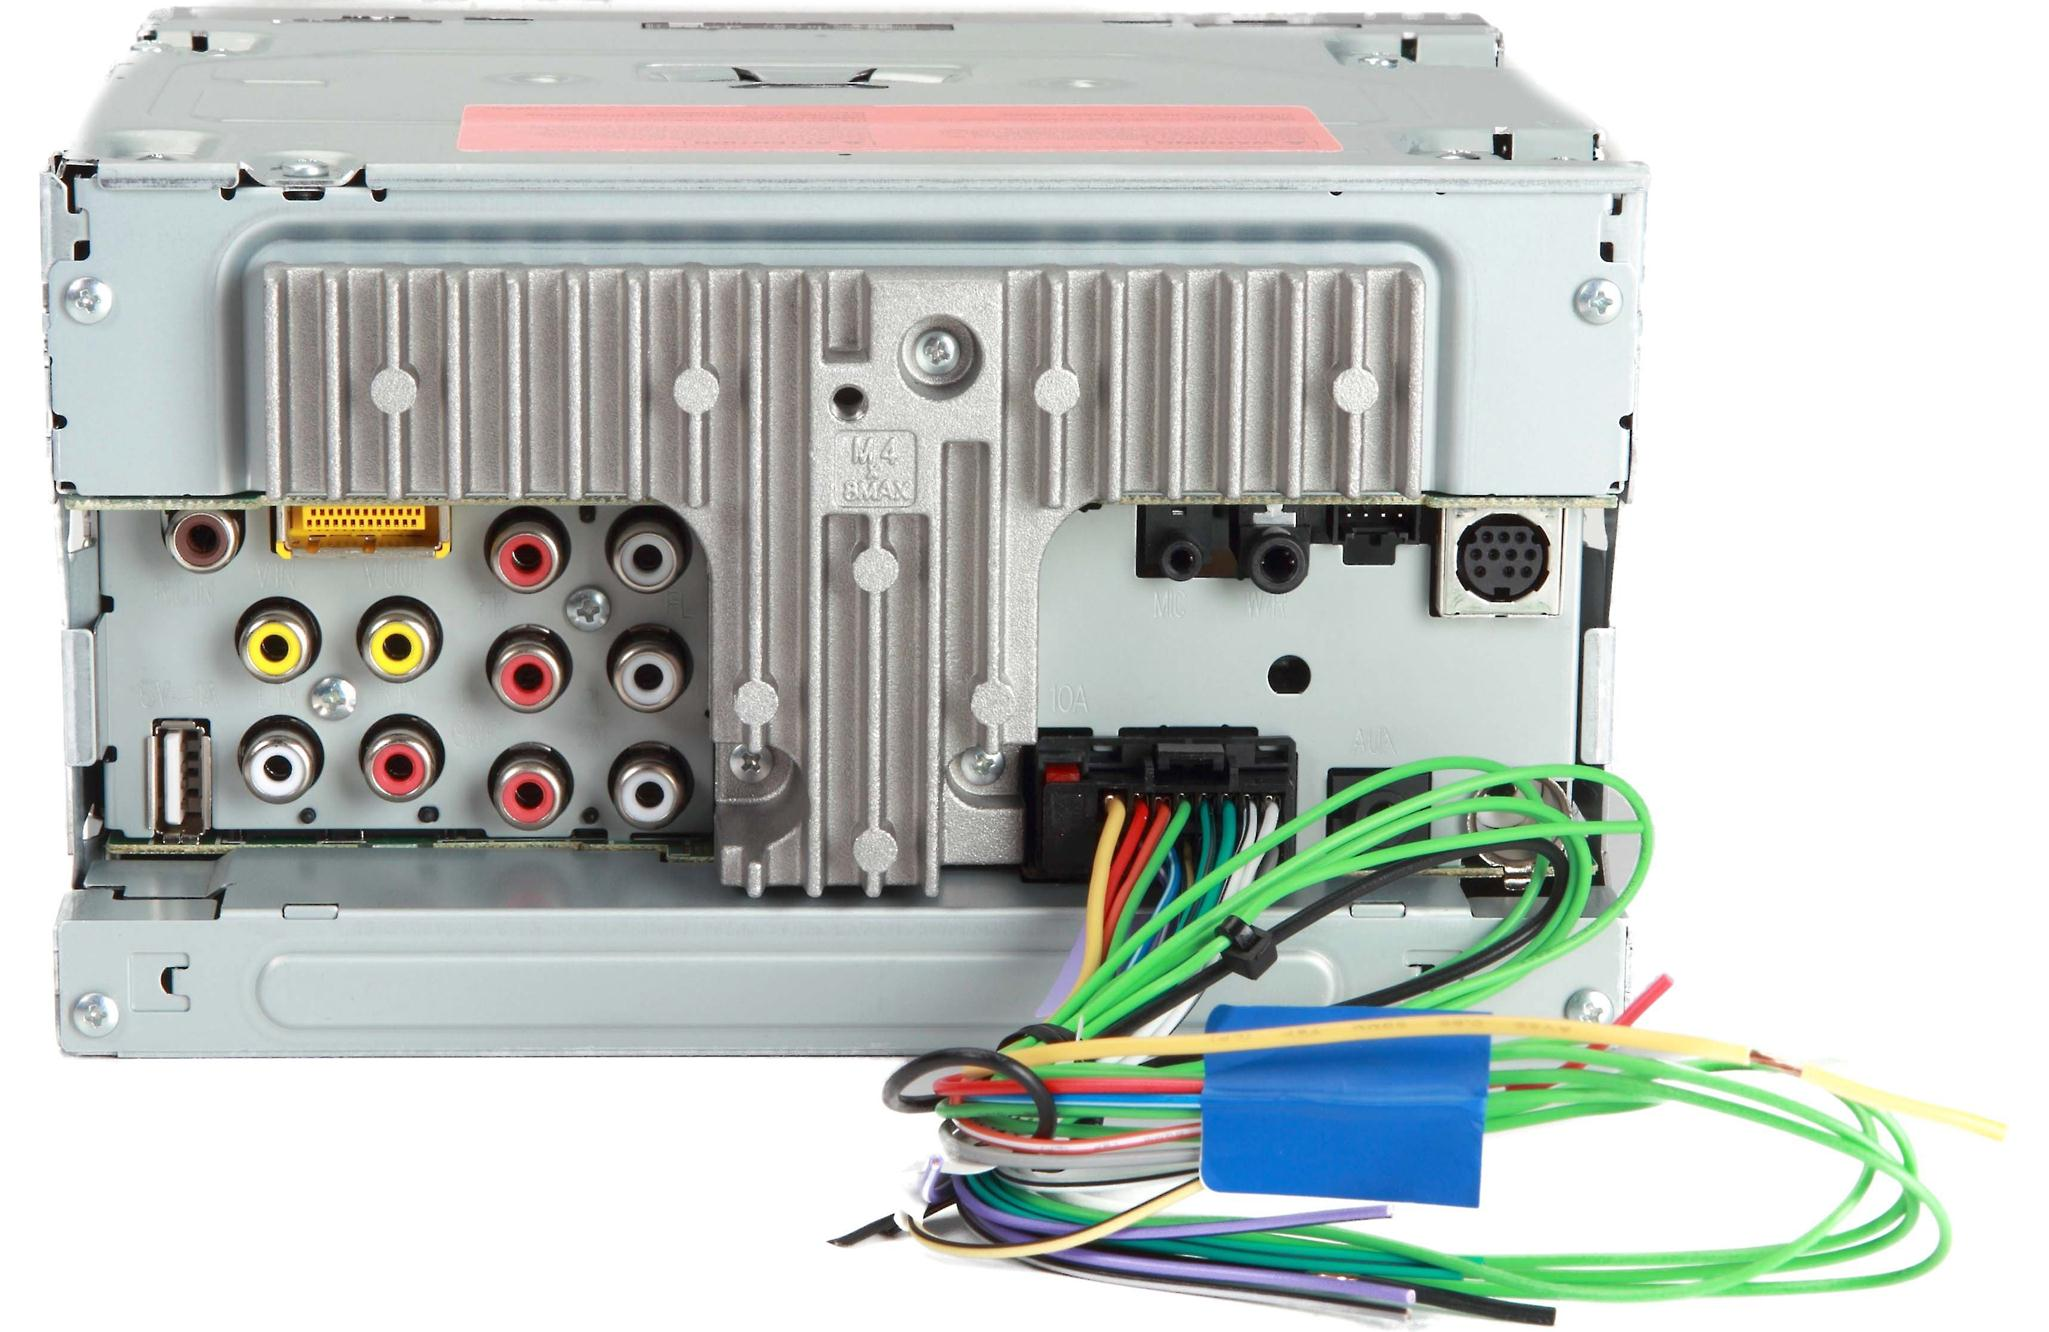 Pioneer Avh X2700bs Harness Wiring Diagram Trusted X2600bt Aavh P3200dvd For Solutions Wire Red